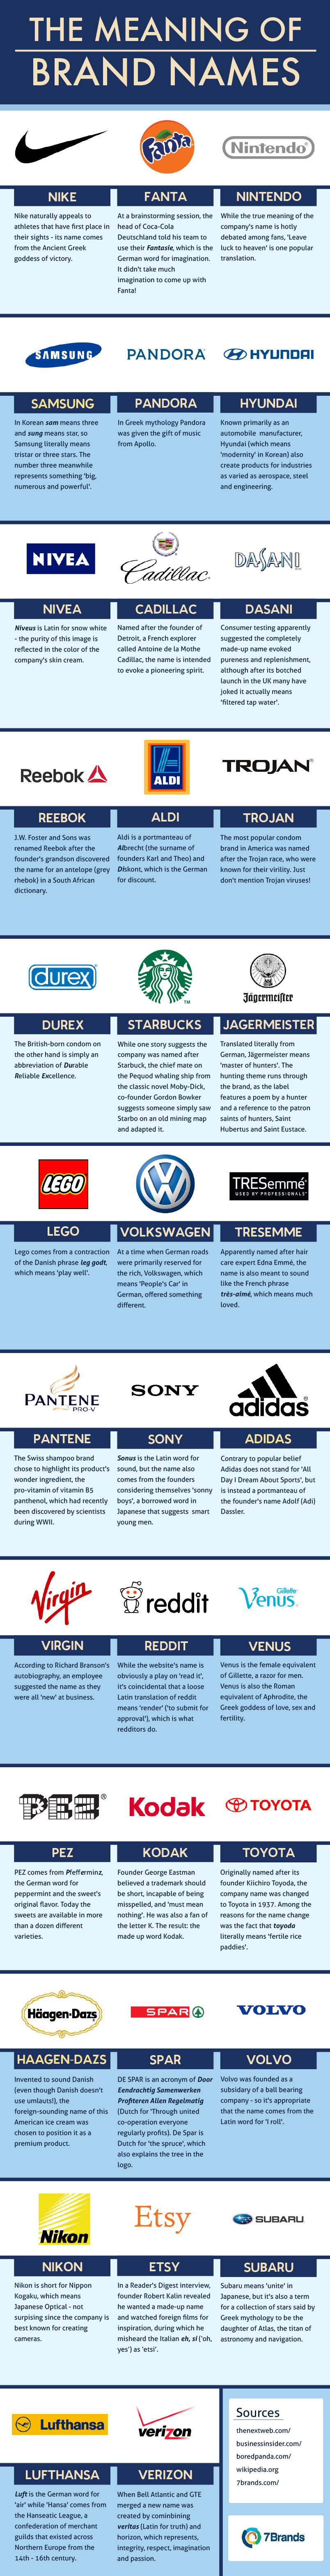 Infographic: The Meaning of Brand Names